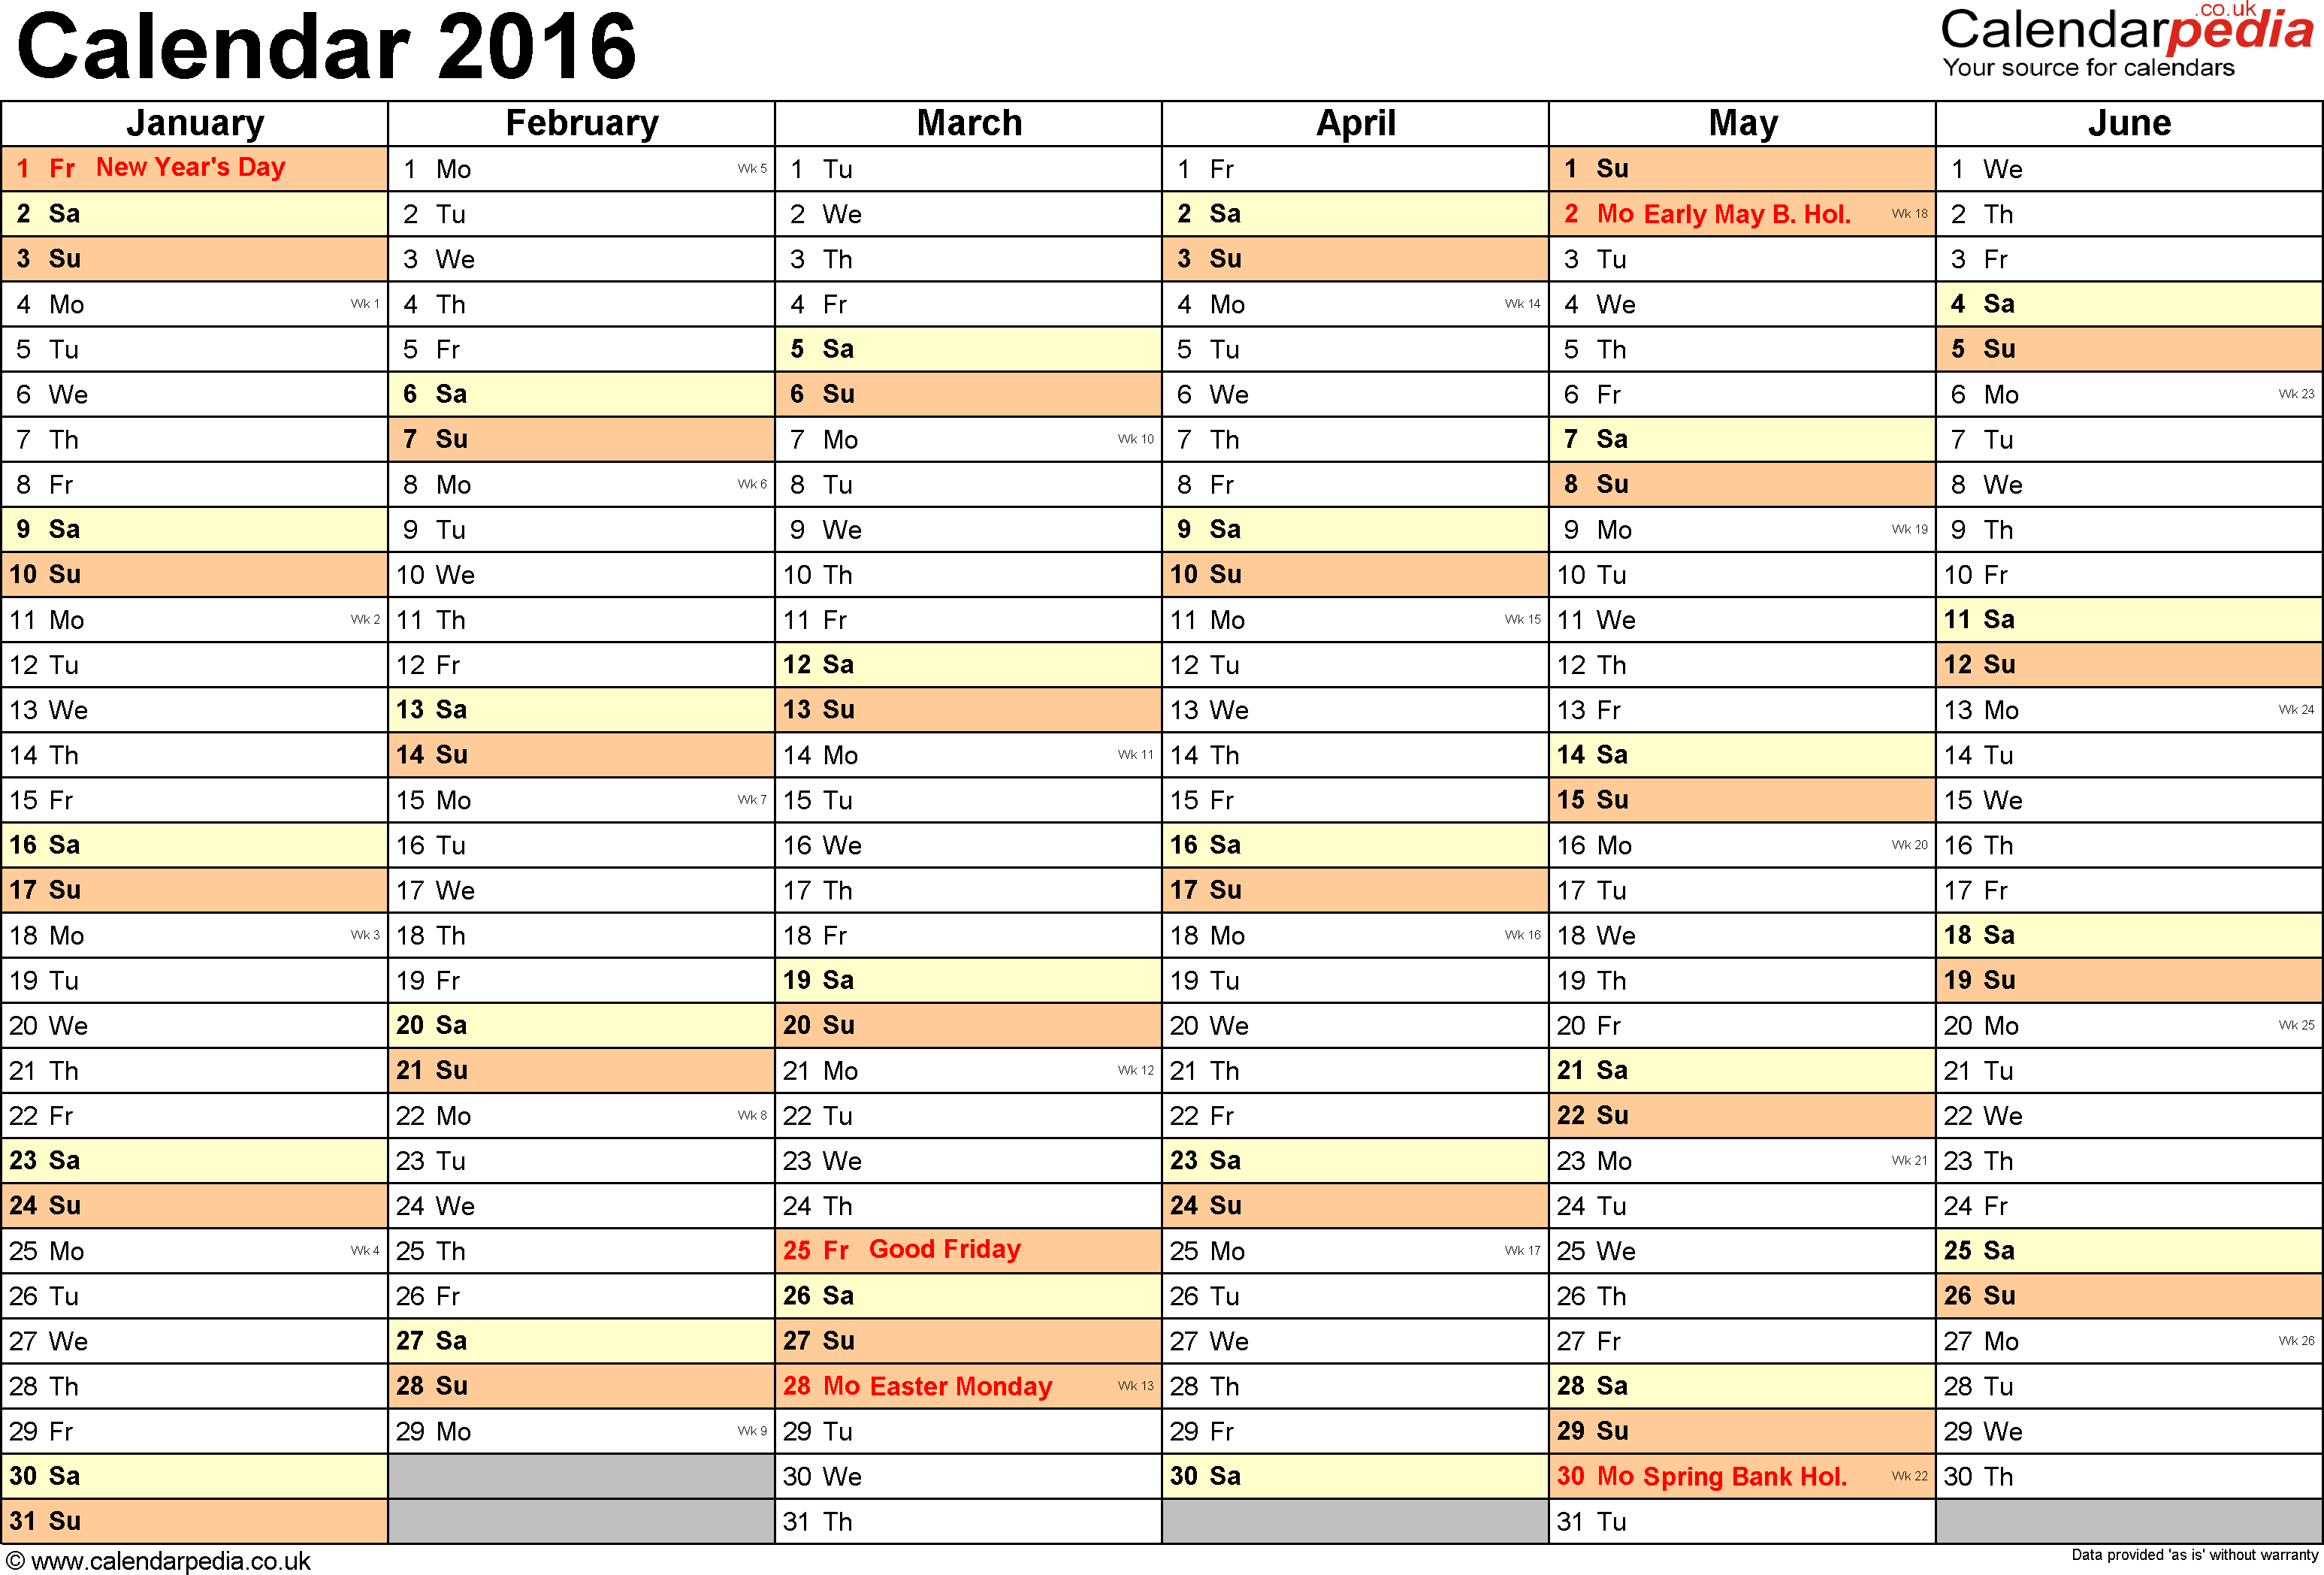 Template 3: Yearly calendar 2016 as Word template, landscape orientation, 2 pages, months horizontally, days vertically, with UK bank holidays and week numbers